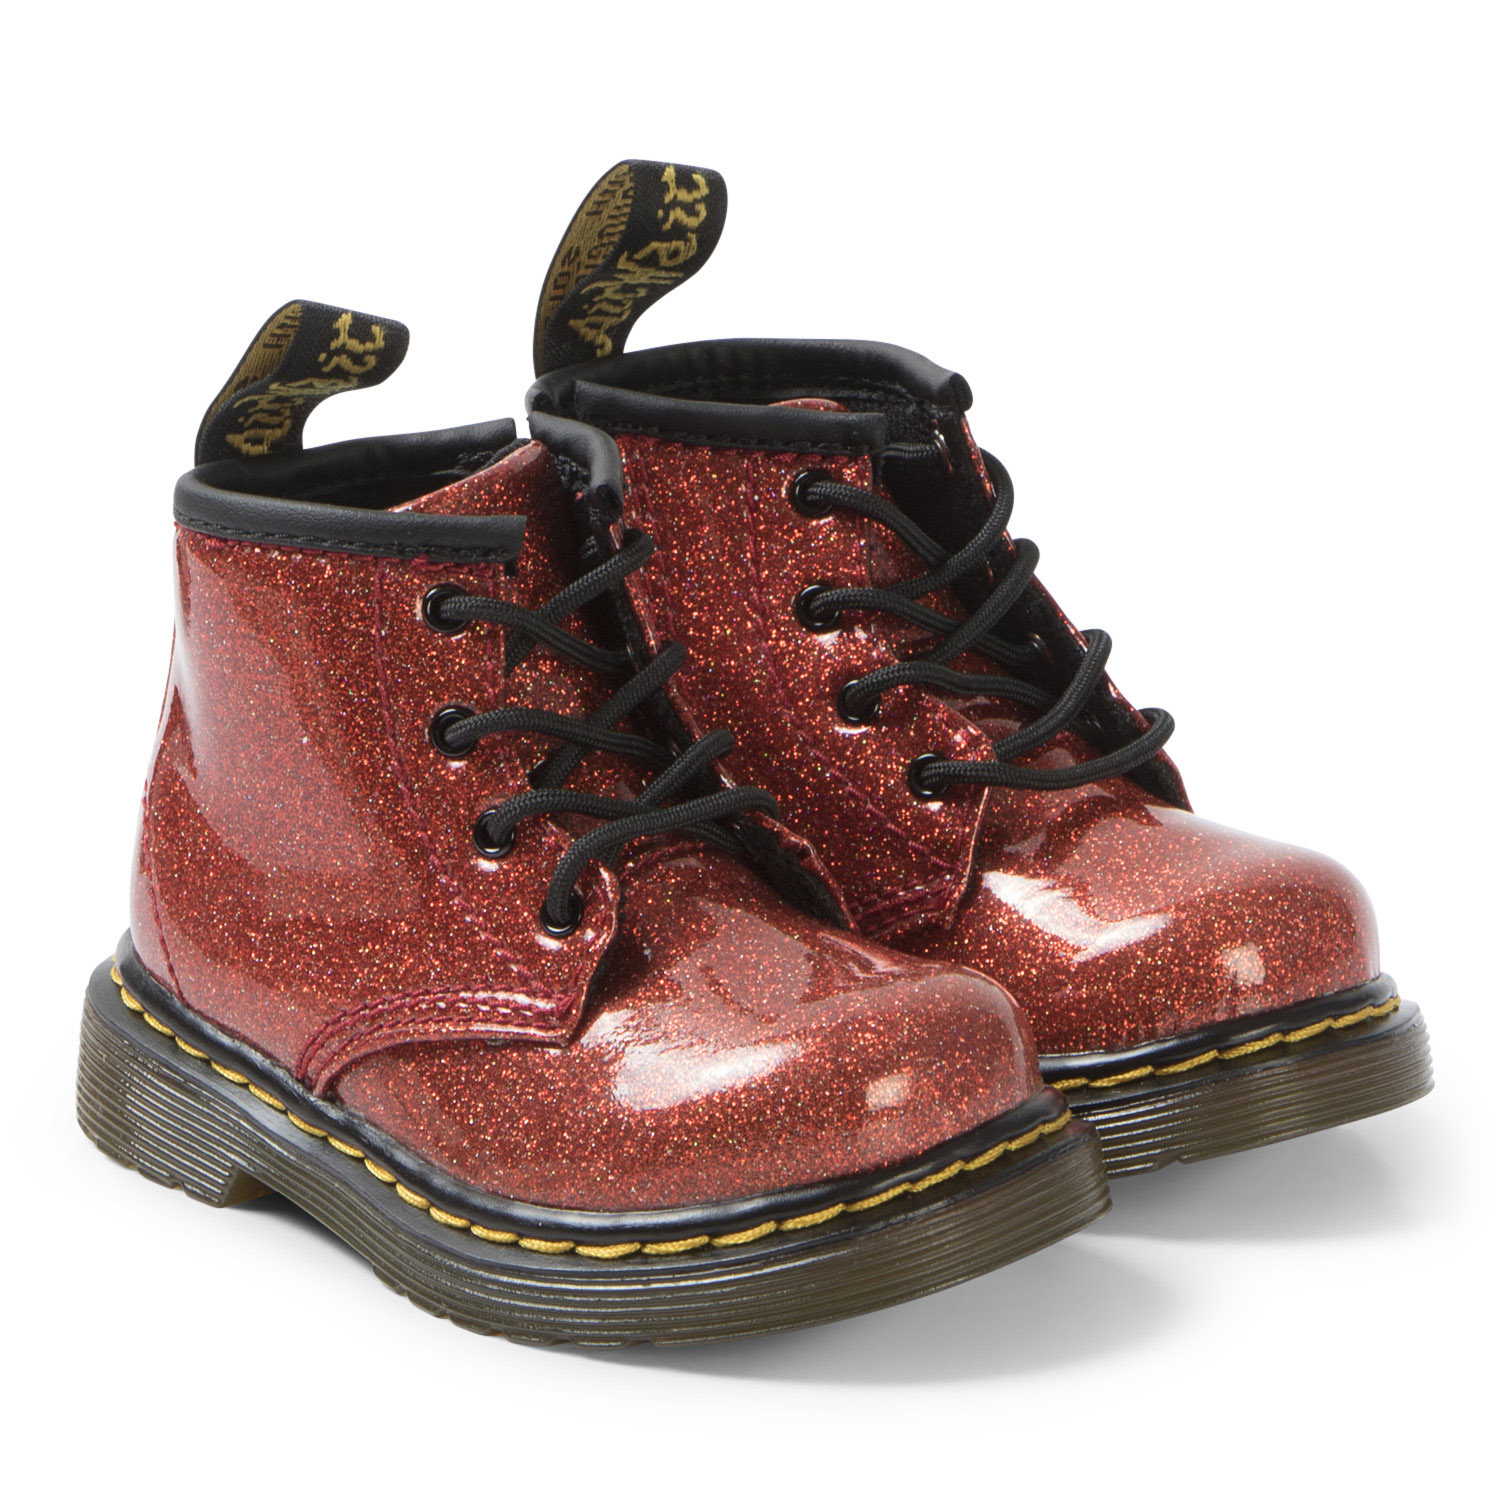 Dr. Martens - Red Glitter 1460 Boots